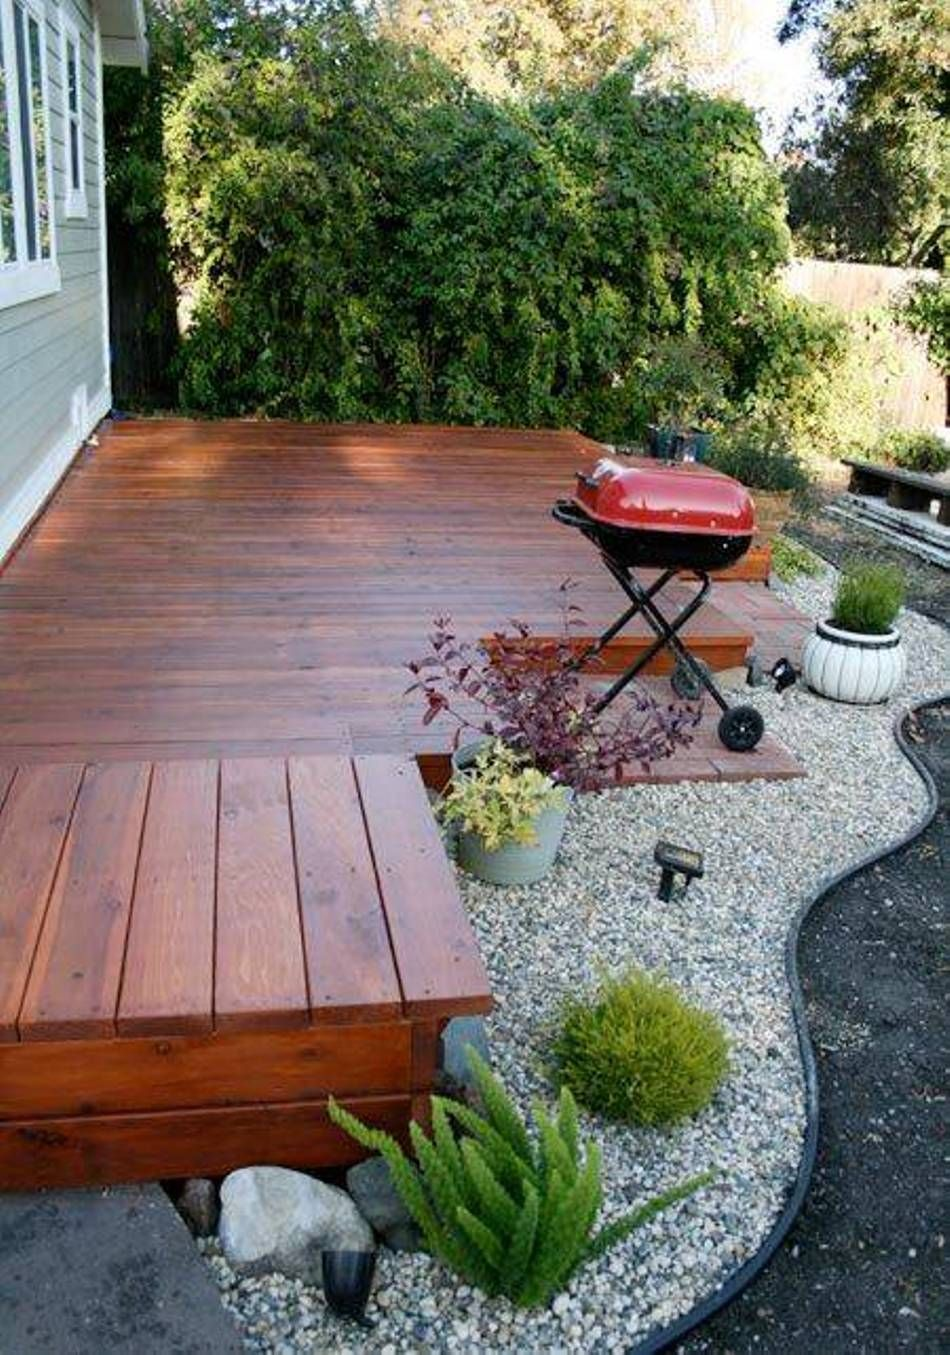 Landscaping And Outdoor Building , Small Yard Deck Design Ideas : Small  Yard Deck Design With Gravel